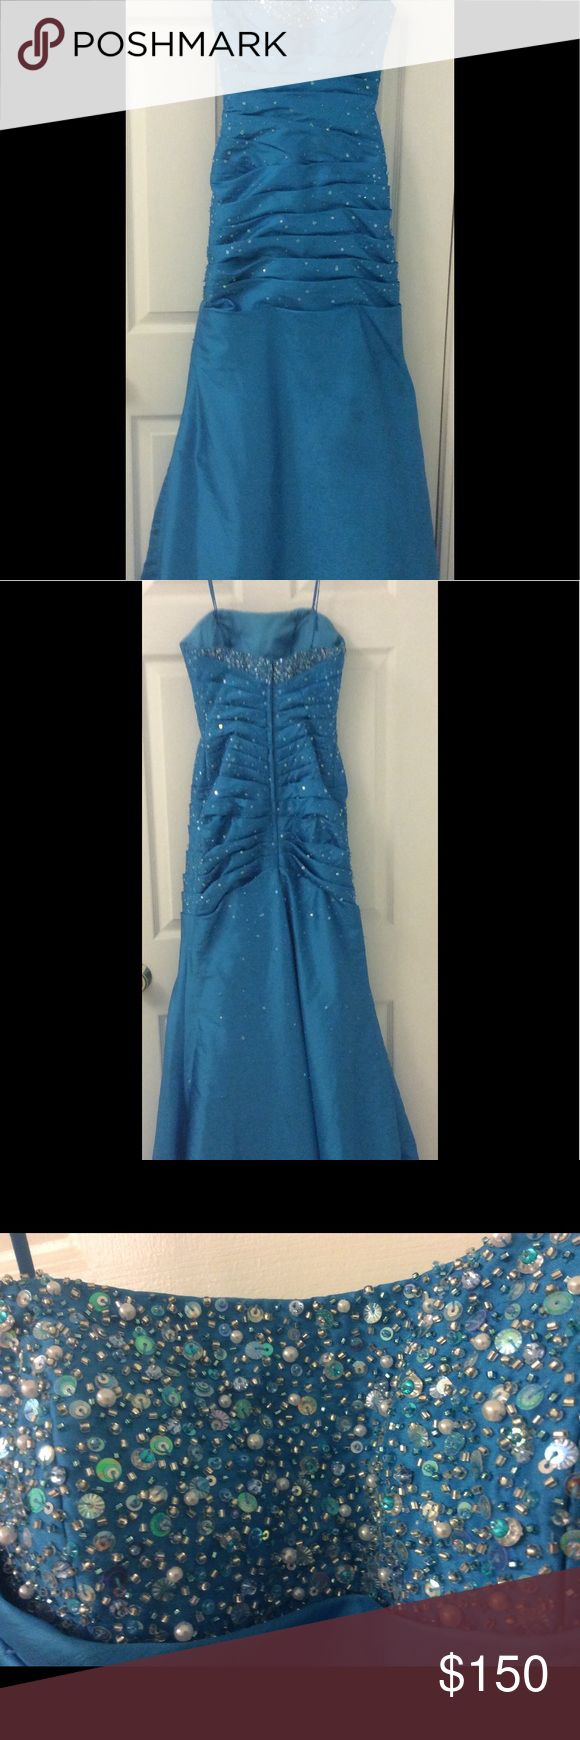 Beautiful Mori Lee prom or pageant dress By Madeline Gardner.  Beautiful blue strapless (can also be worn with the straps) pageant/prom dress, size 3/4, worn once. Mori Lee Dresses Prom